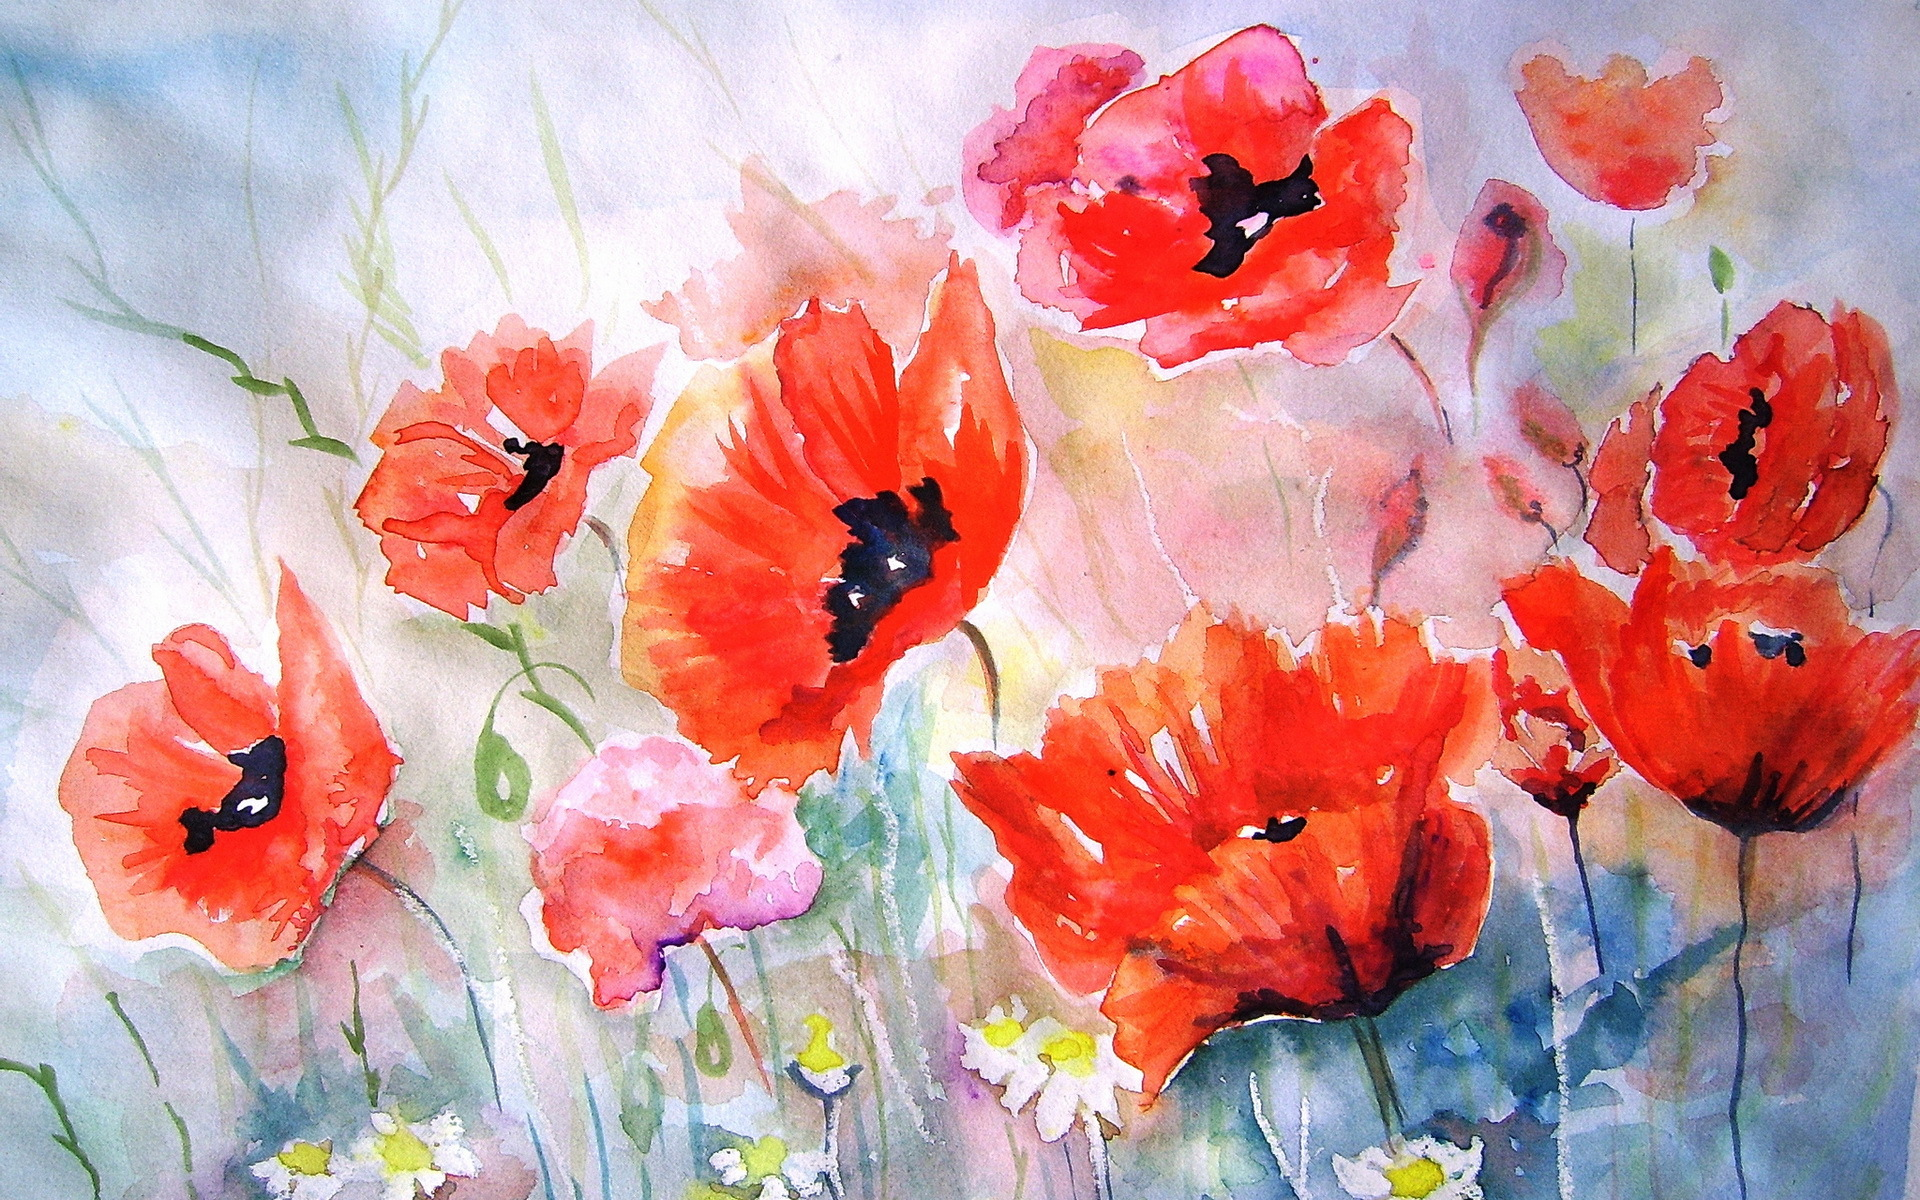 Poppies flower art painting bokeh wallpaper 1920x1200 183394 poppies flower art painting bokeh wallpaper 1920x1200 183394 wallpaperup mightylinksfo Image collections